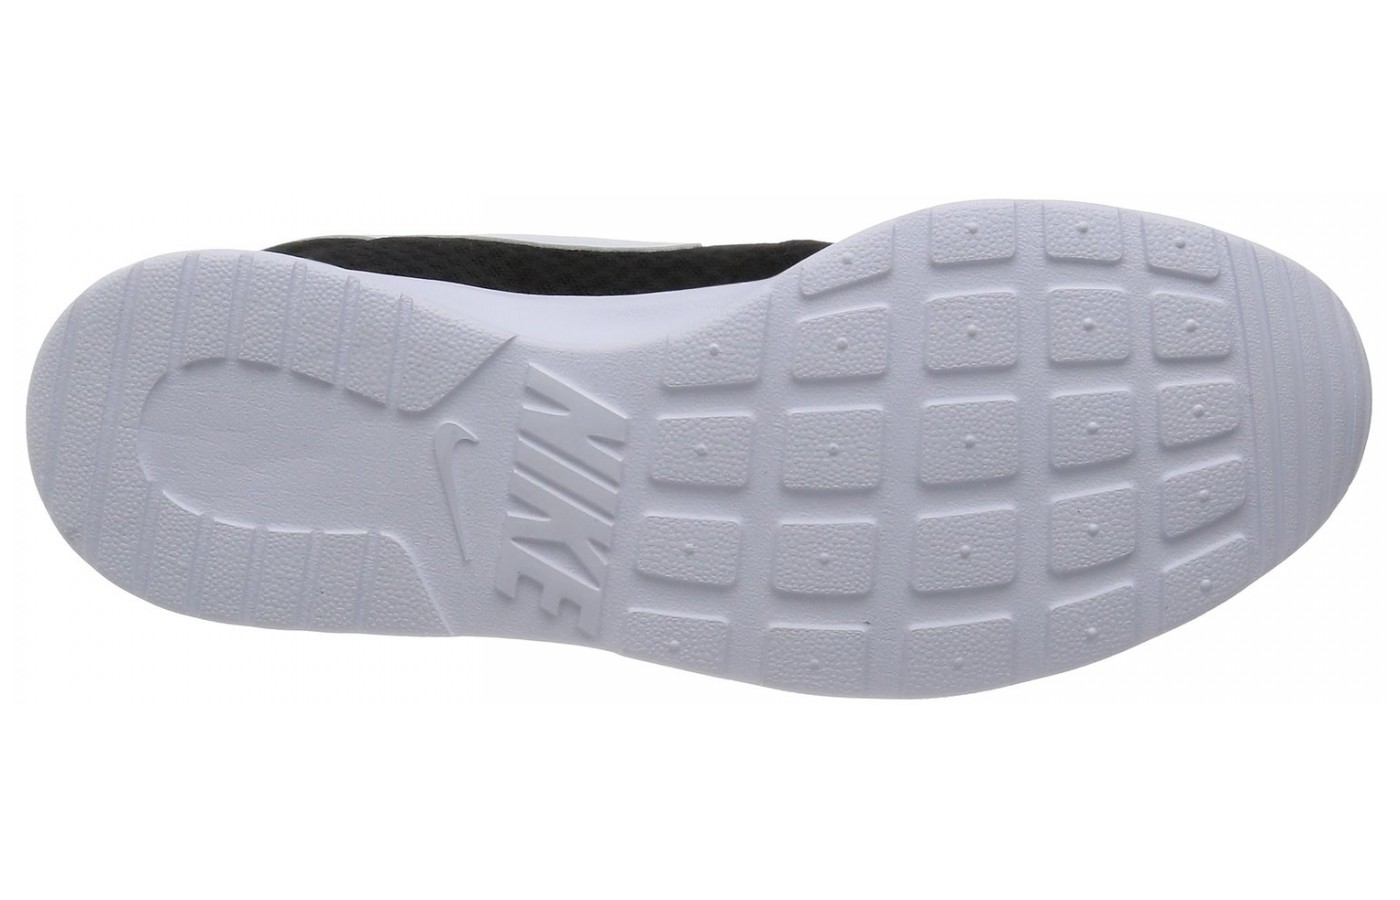 The waffle pattern outsole of the Nike Tanjun